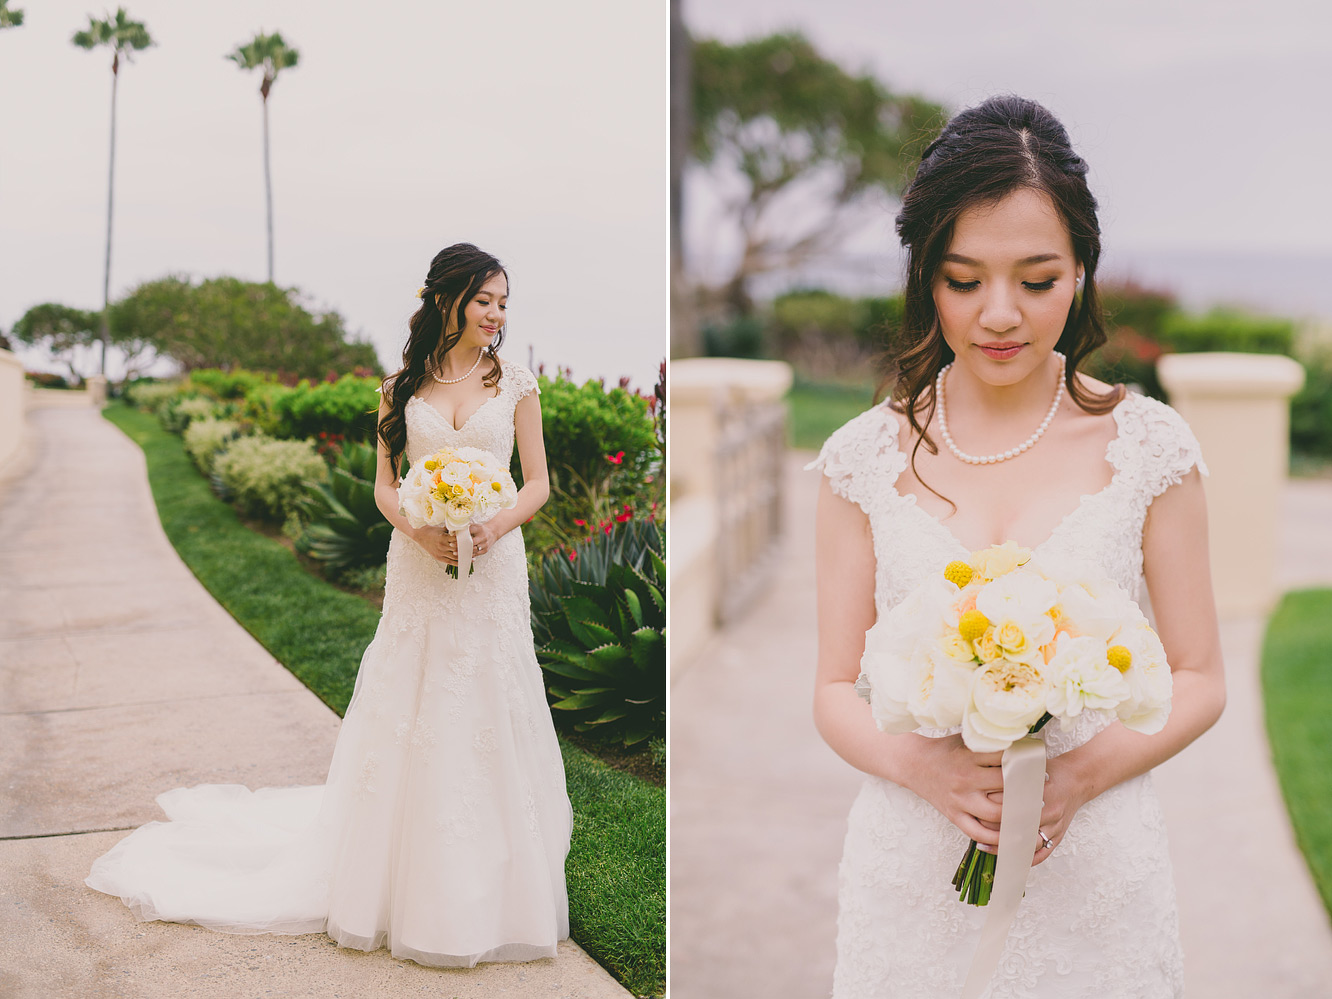 ritz-carlton-dana-point-wedding-1014